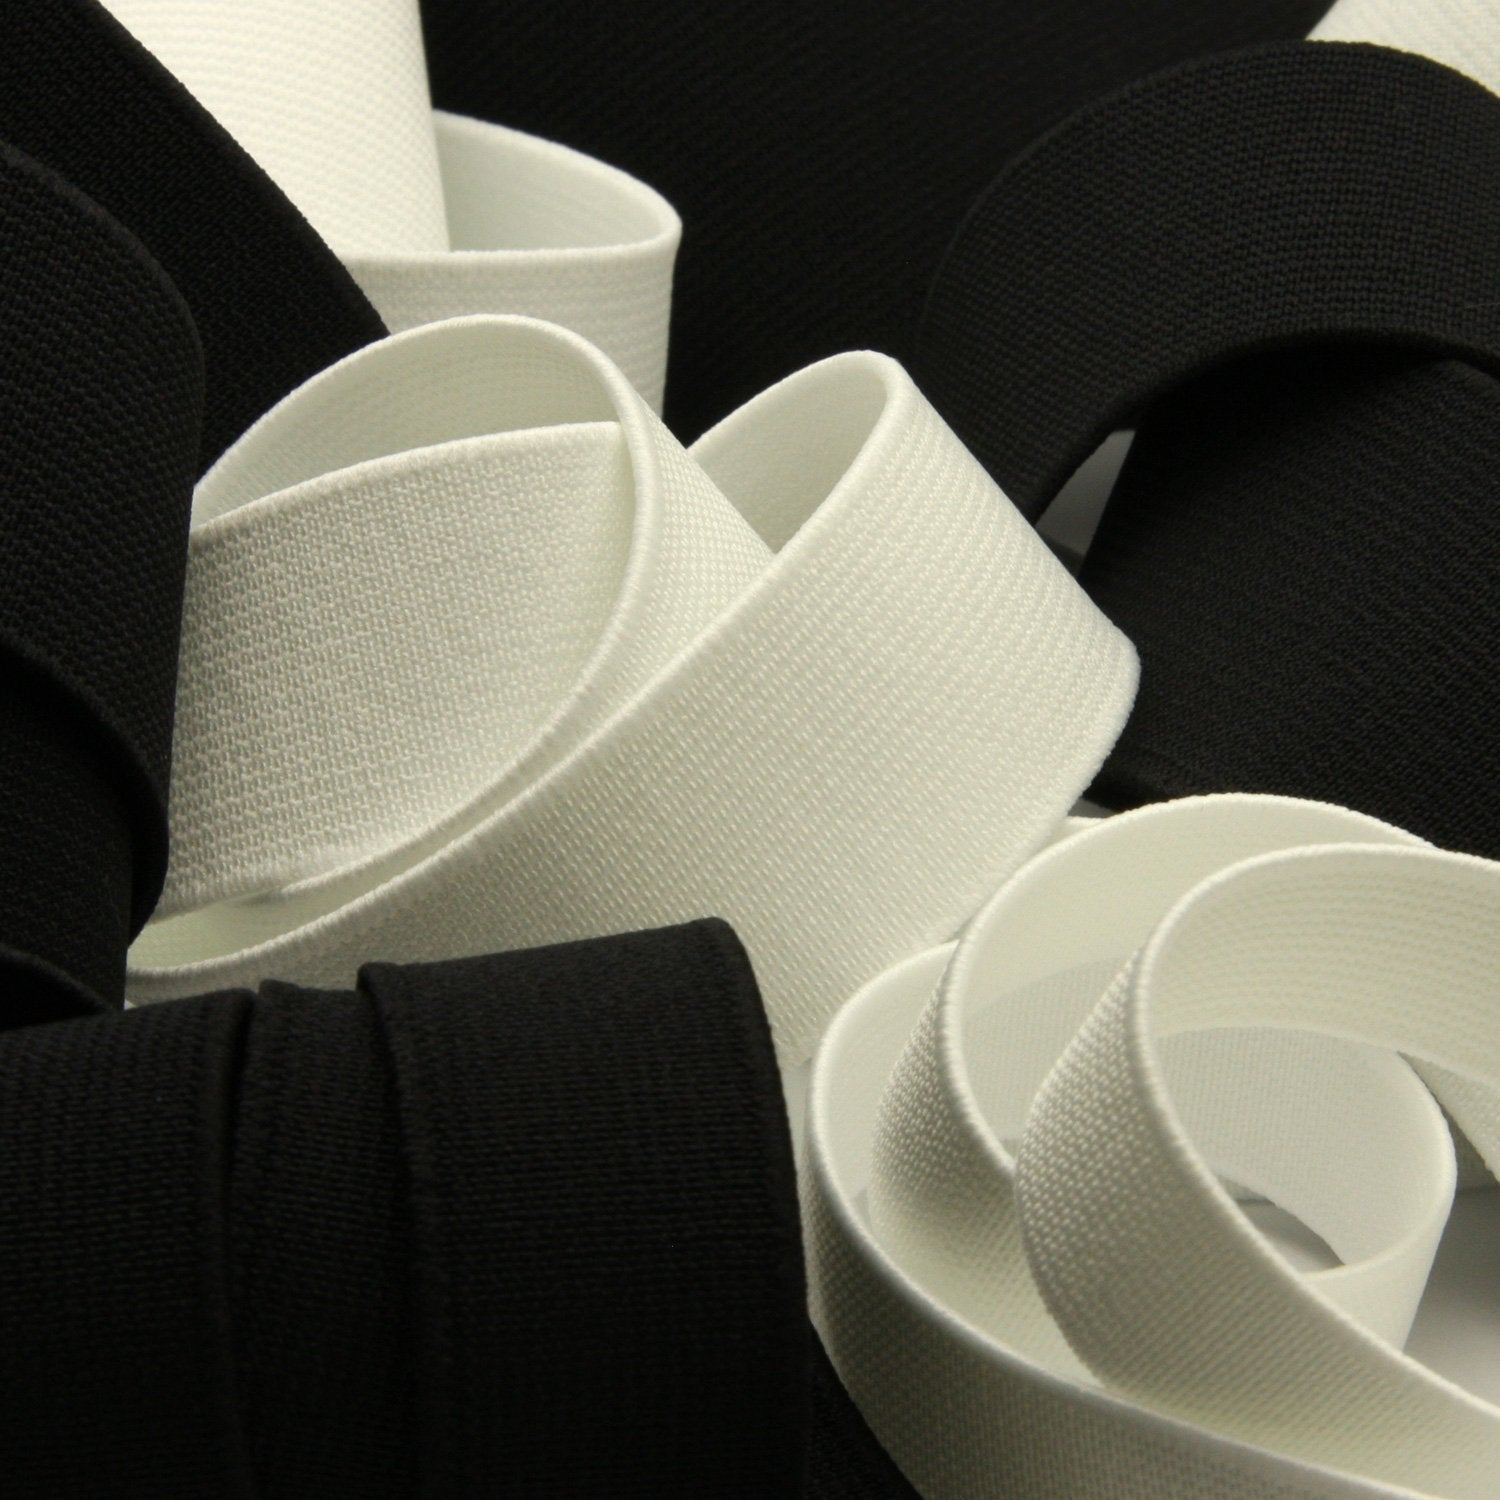 FUJIYAMA RIBBON [Wholesale] Soft Type Inside Belt 25mm 30 Meters Roll Off White